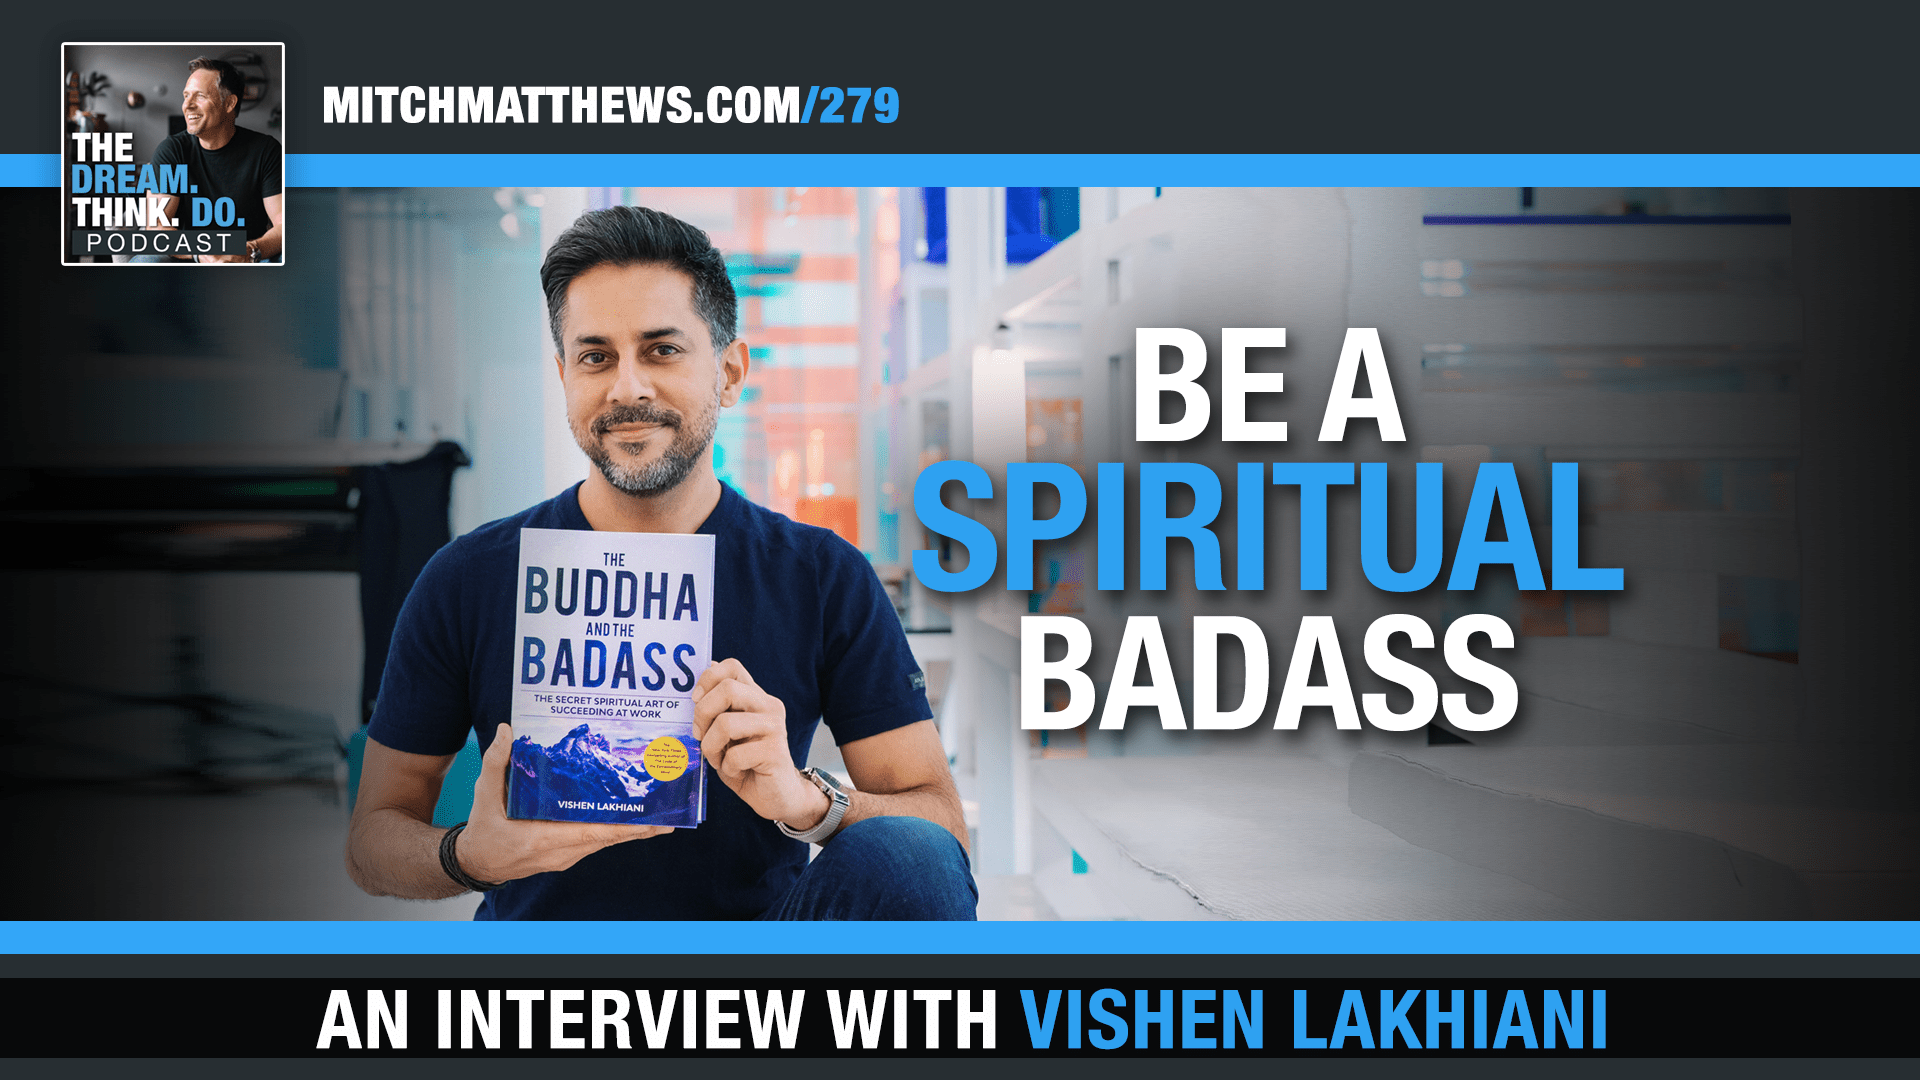 Vishen Lakhiani joins us for DREAM THINK DO